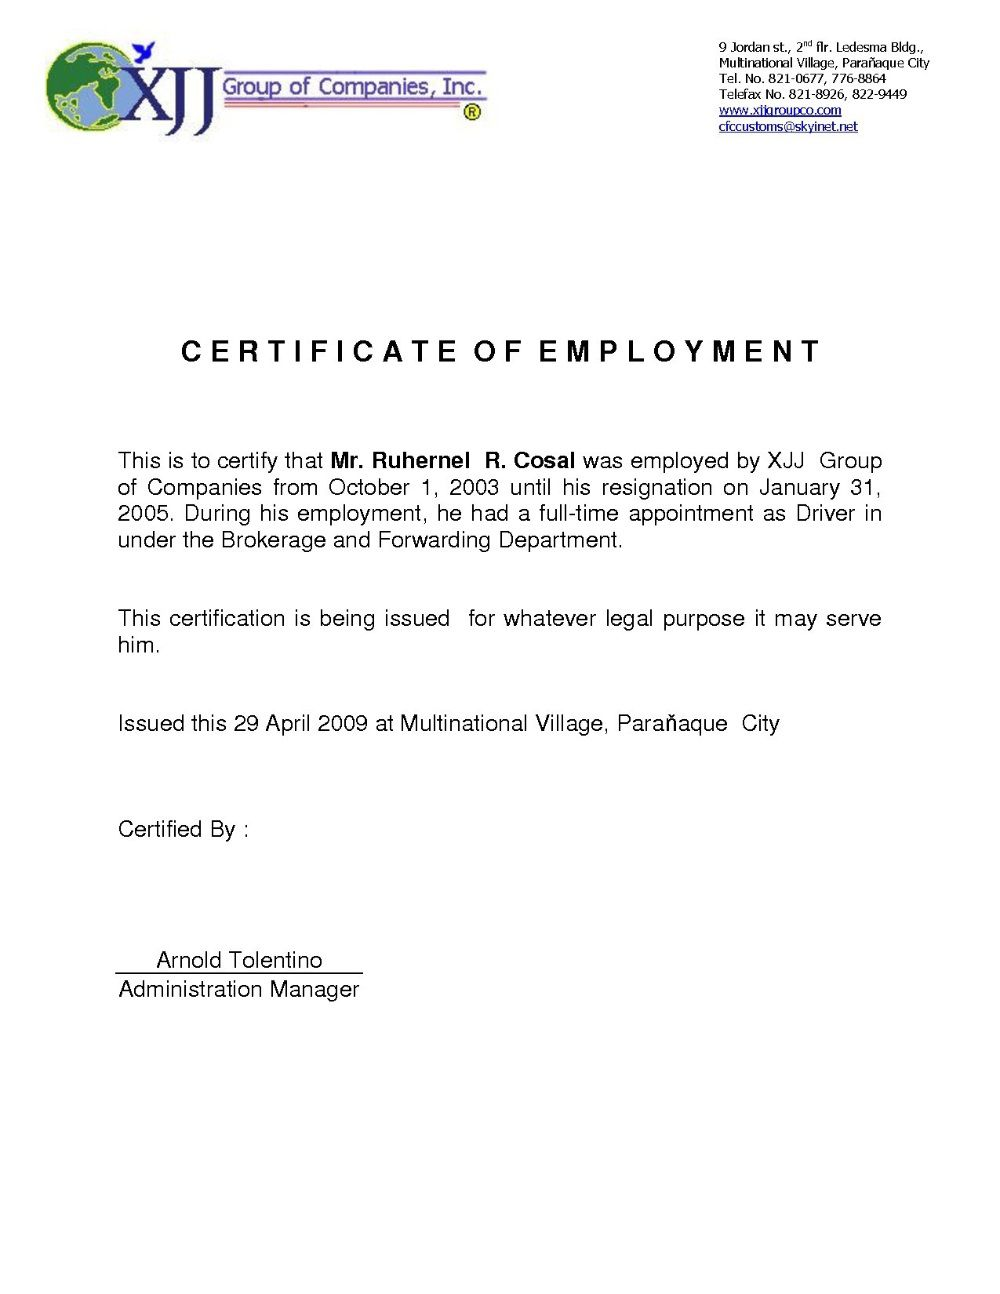 005 Incredible Certificate Of Employment Template Highest Clarity  Nz Sample Word Format FreeFull